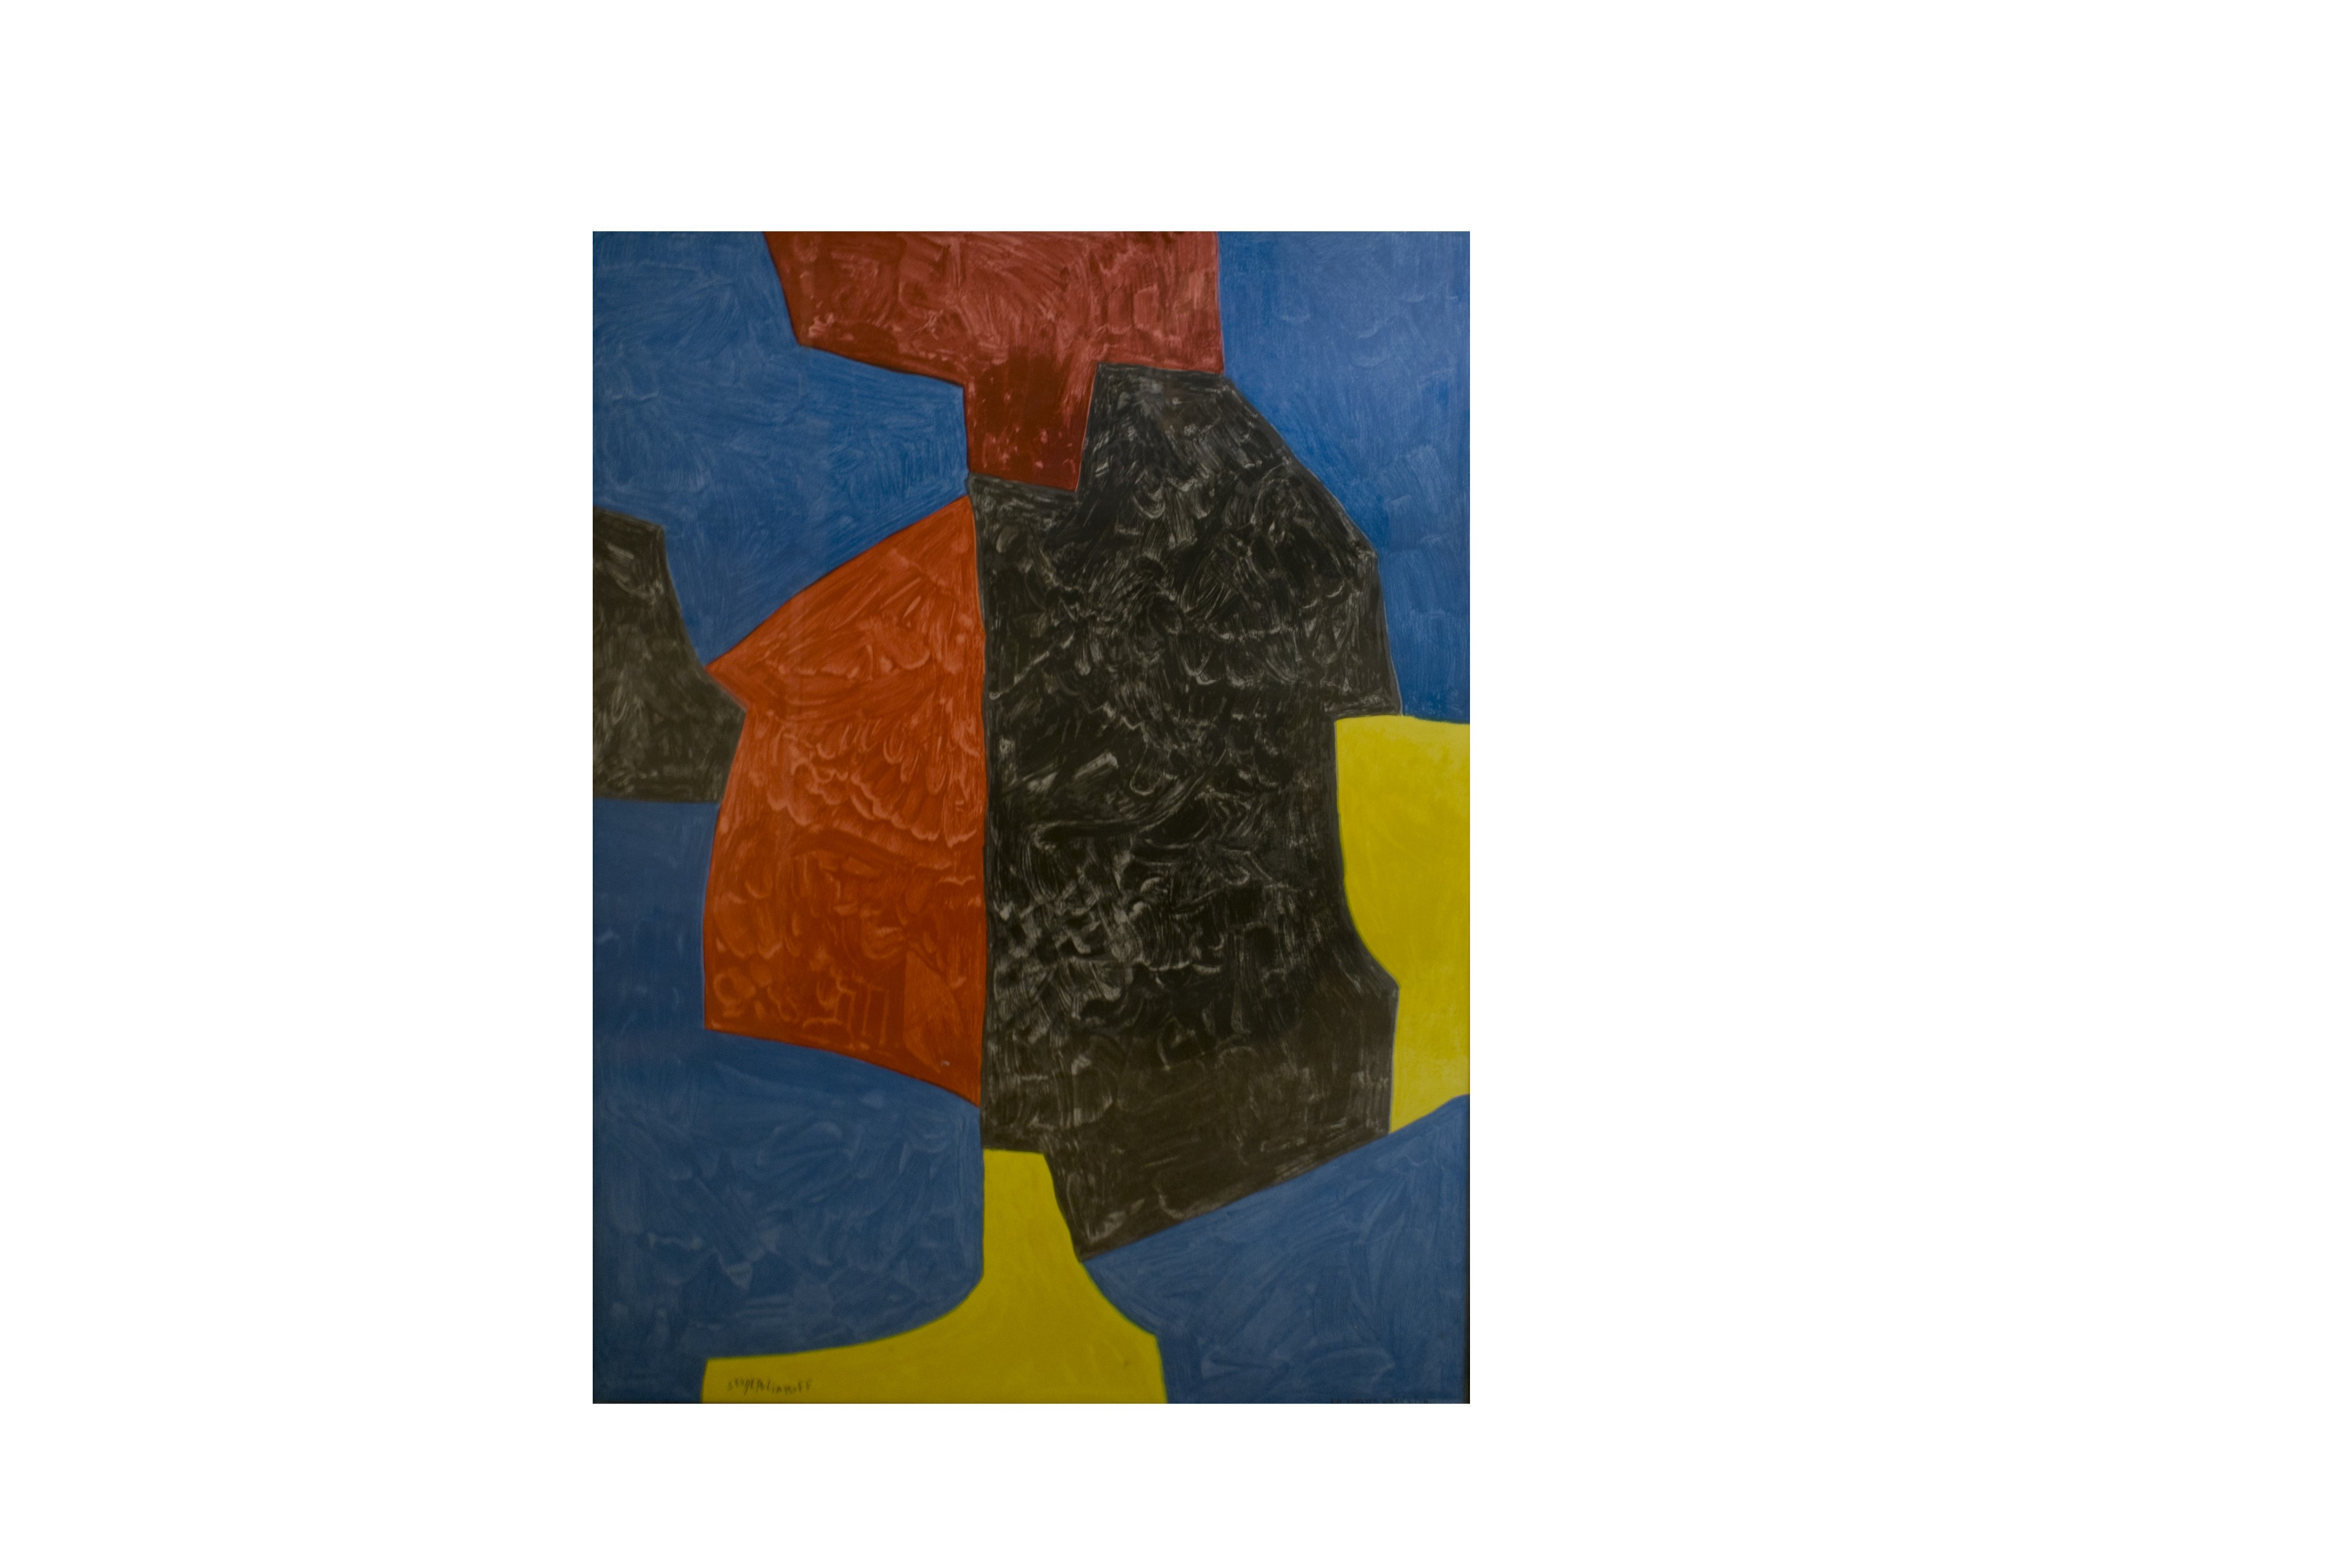 Serge Poliakof, Shapes, lithograph signed in the plate, printed by Mourlot 1972, 90 x 65 cm.